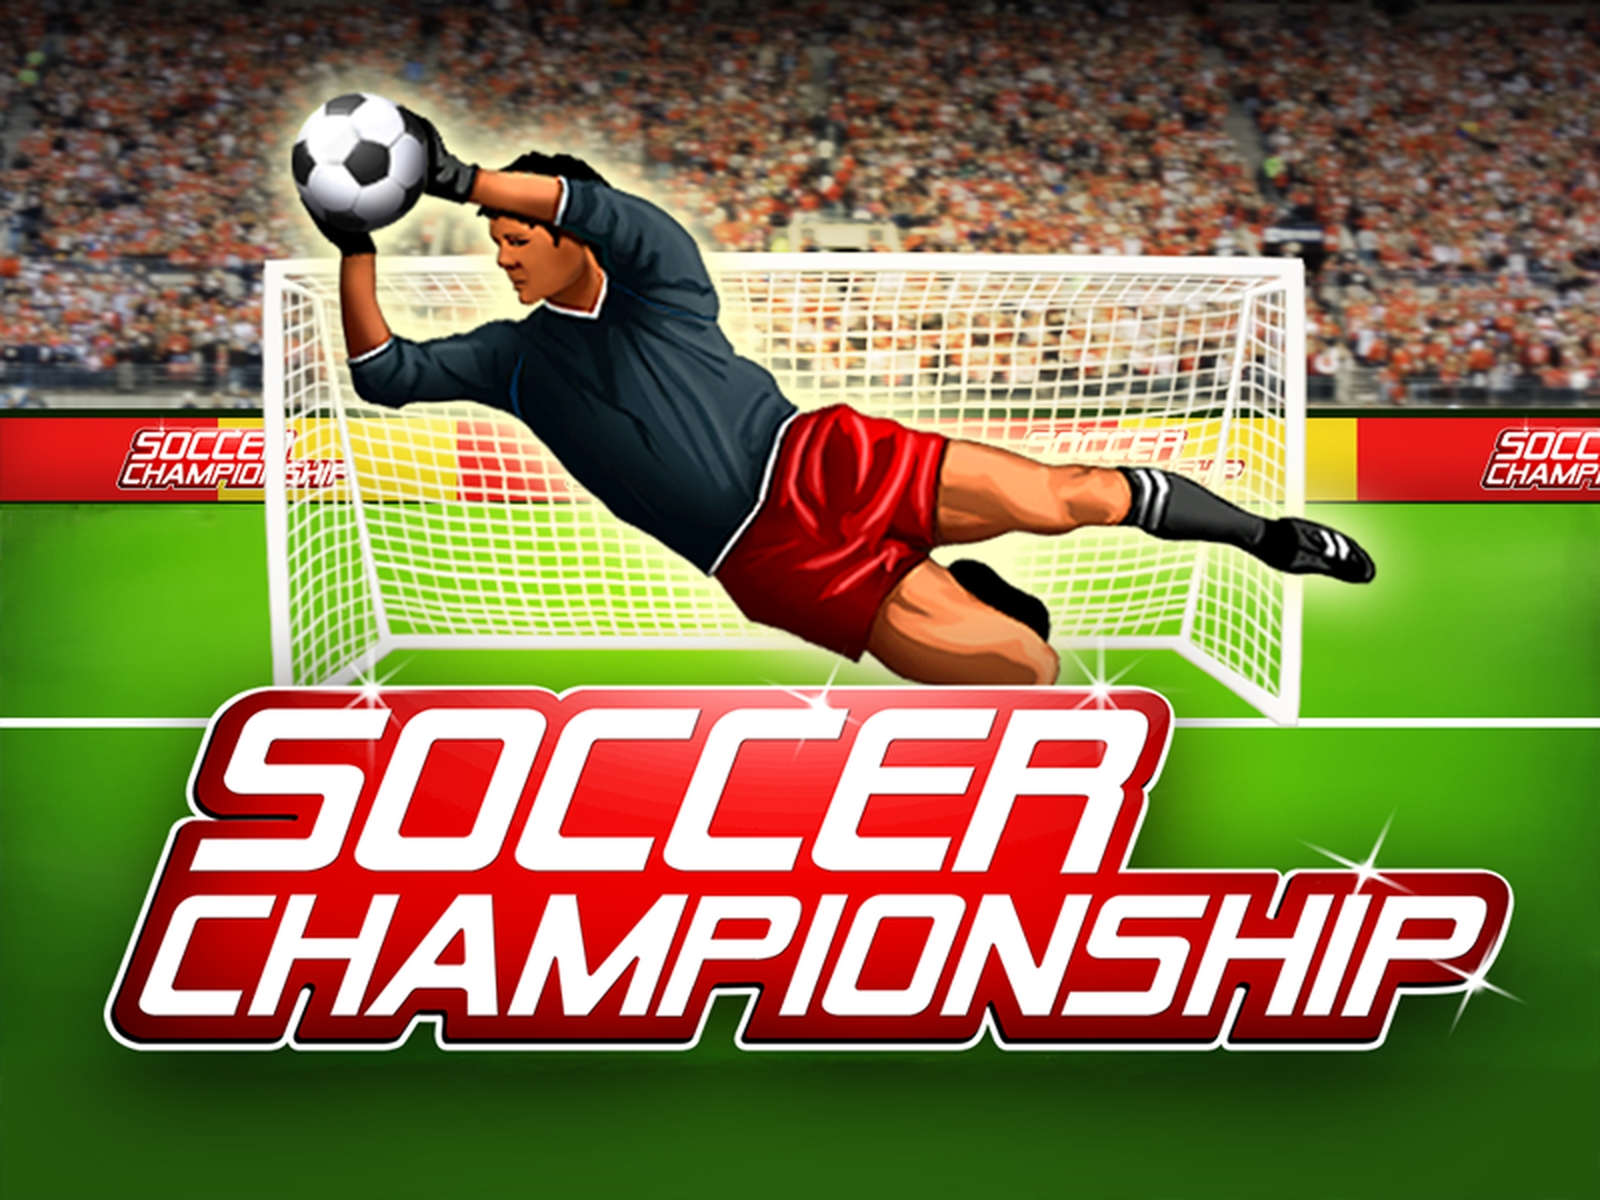 The Soccer Championship Online Slot Demo Game by Tom Horn Gaming